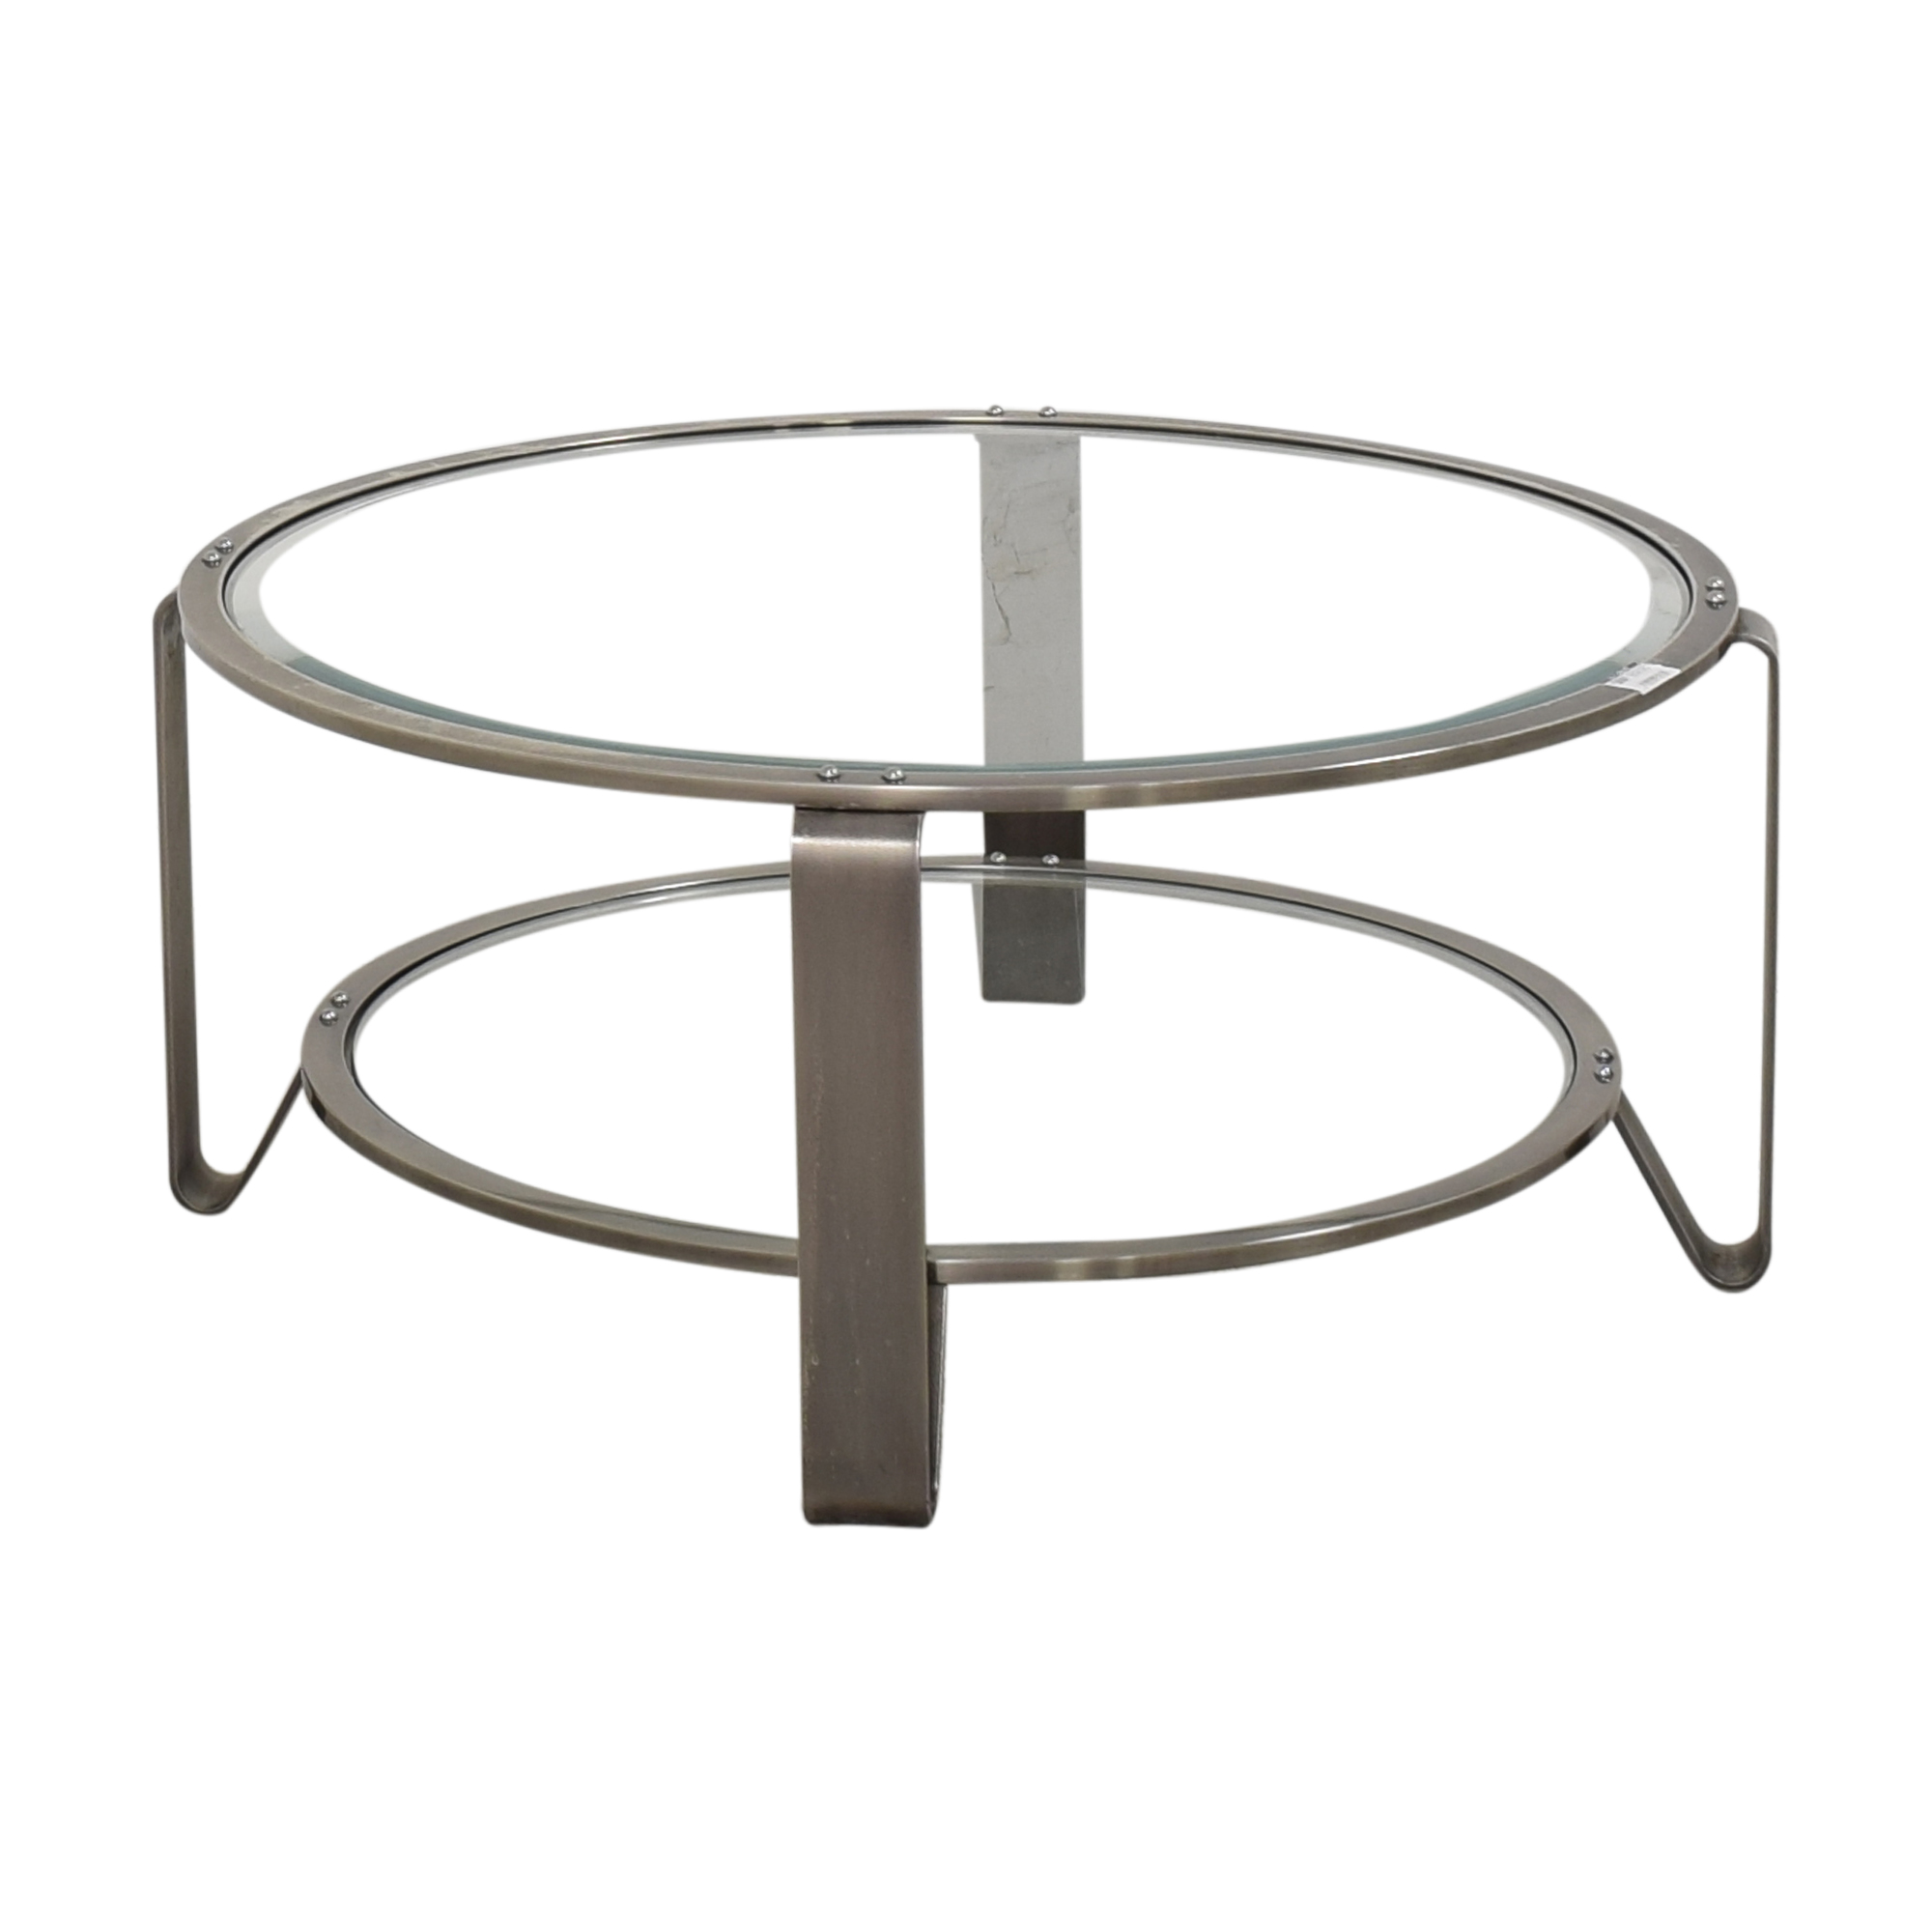 Two Shelf Round Coffee Table / Coffee Tables